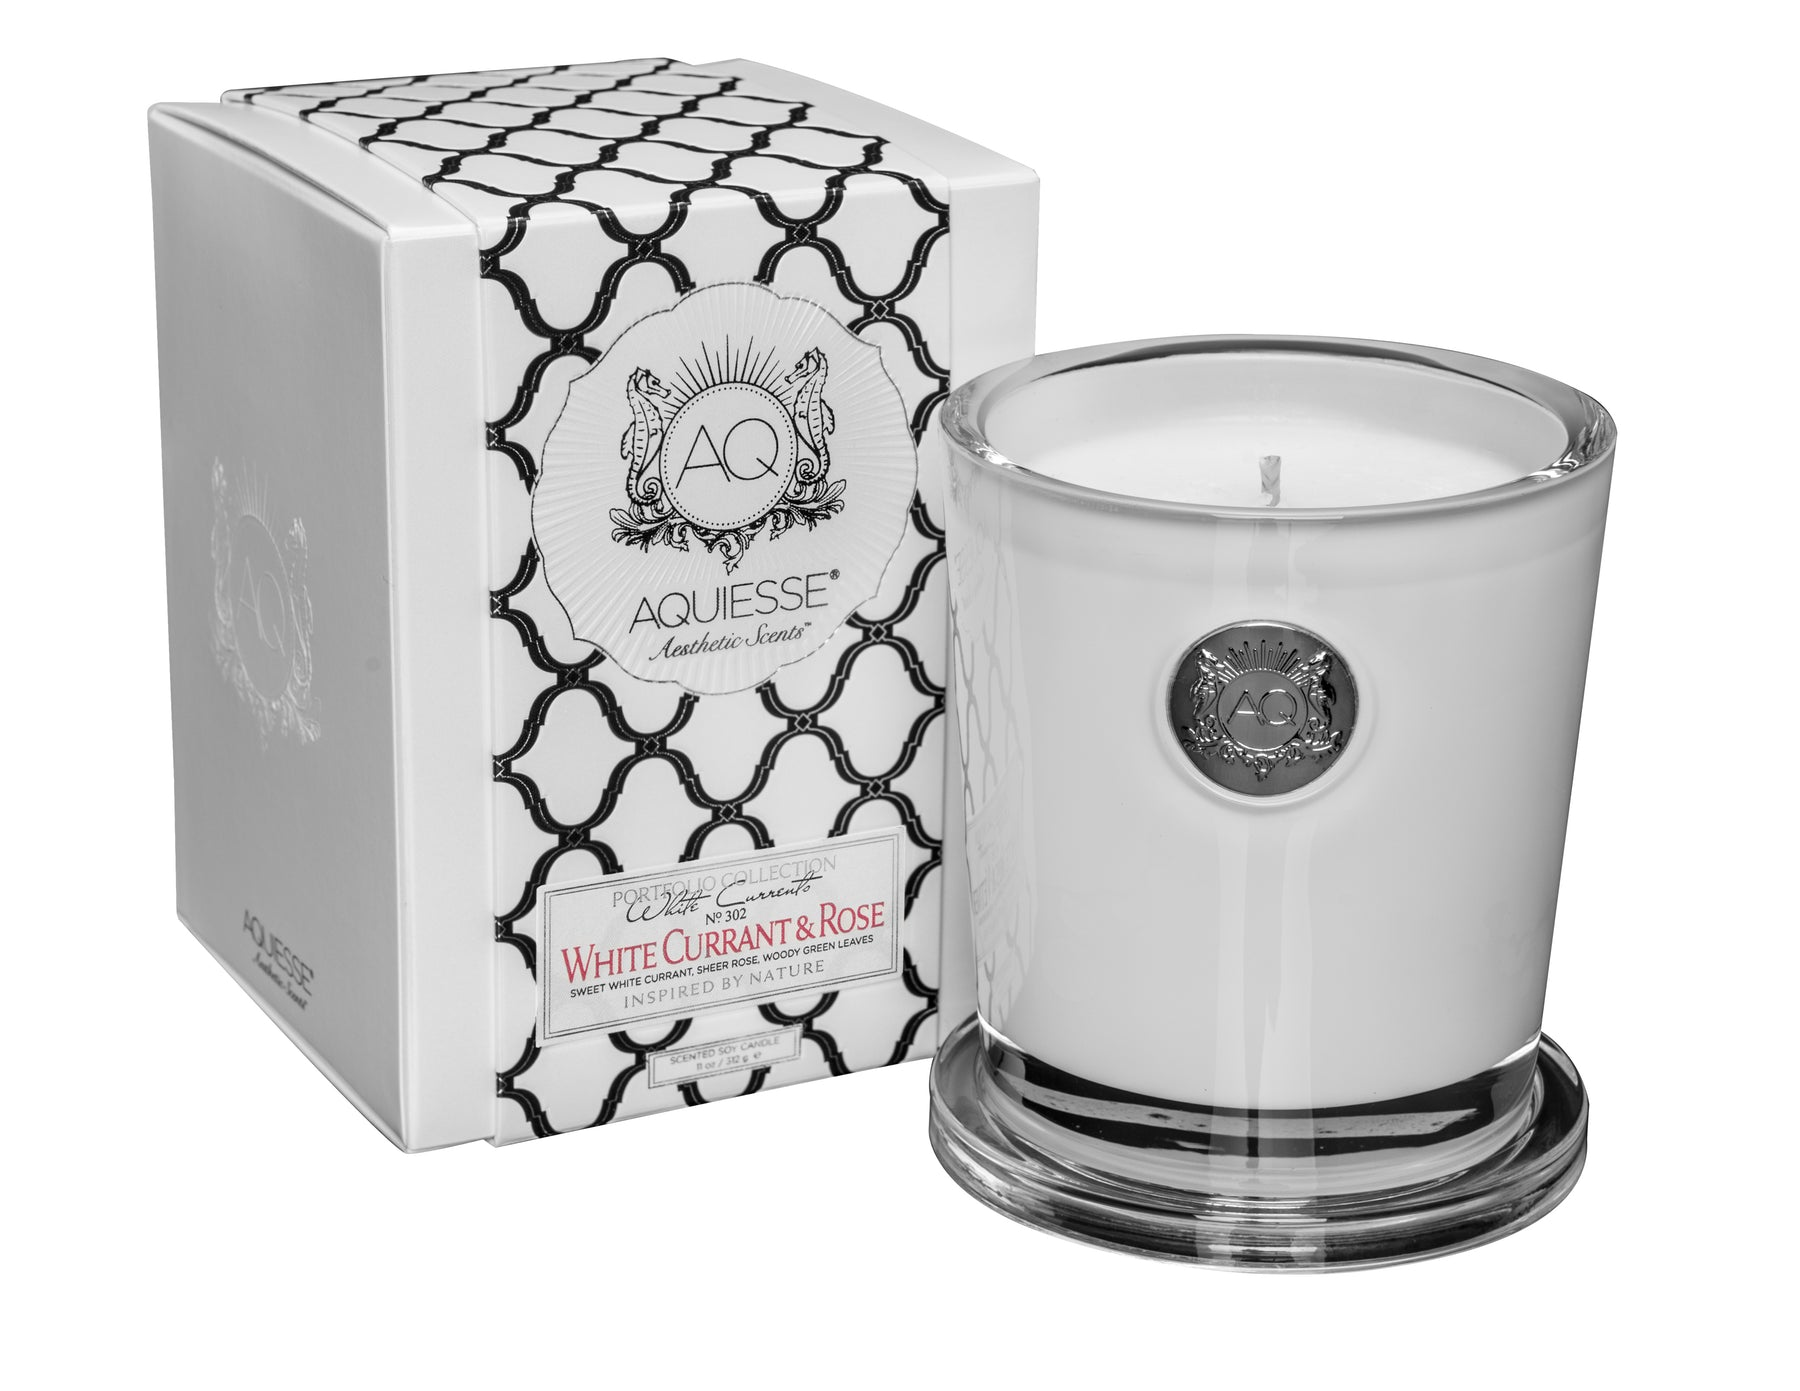 White Currant And Rose Large Soy Candle Gift Box By Aquiesse Tuftd